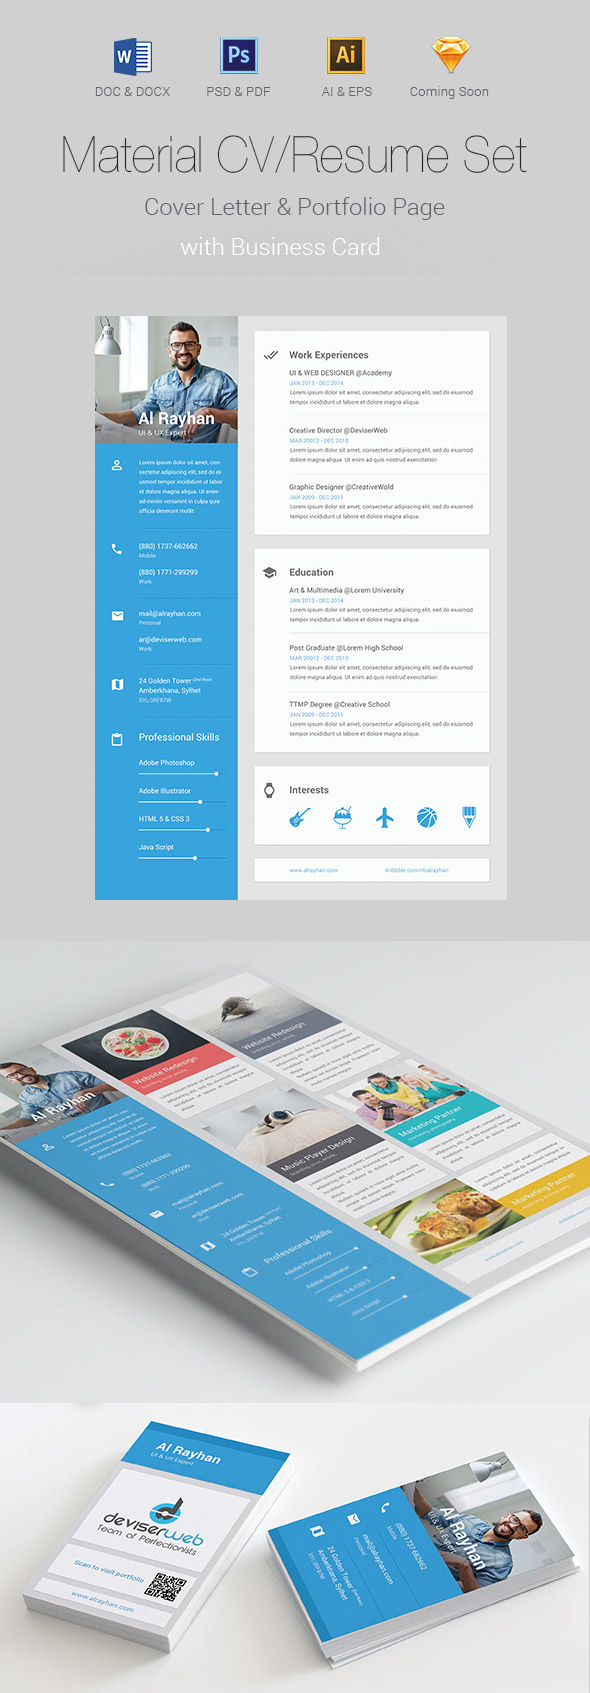 Material CV/Resume Design Set